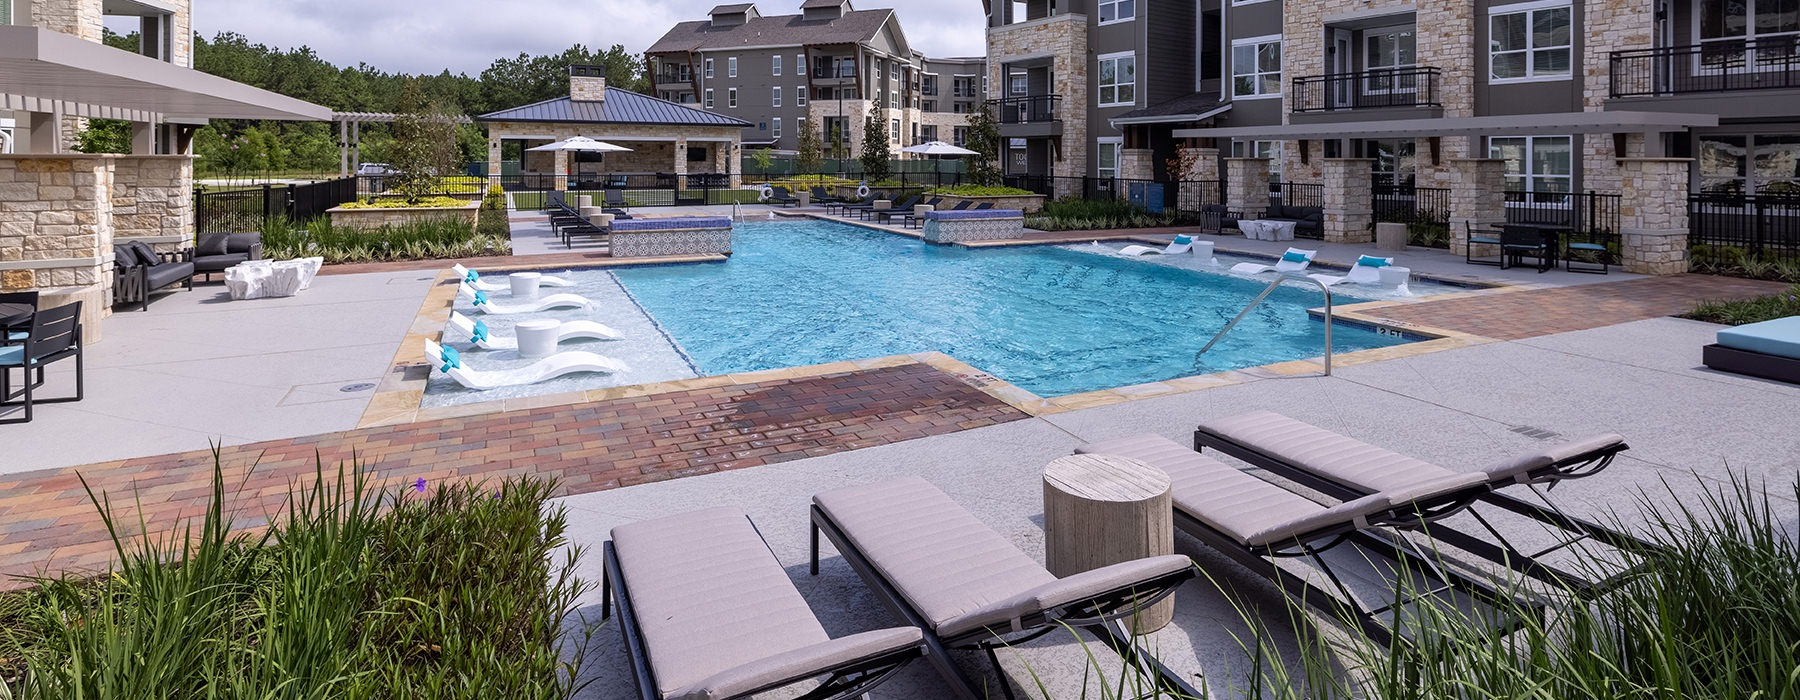 Large resort style sparkling blue pool with large sundeck